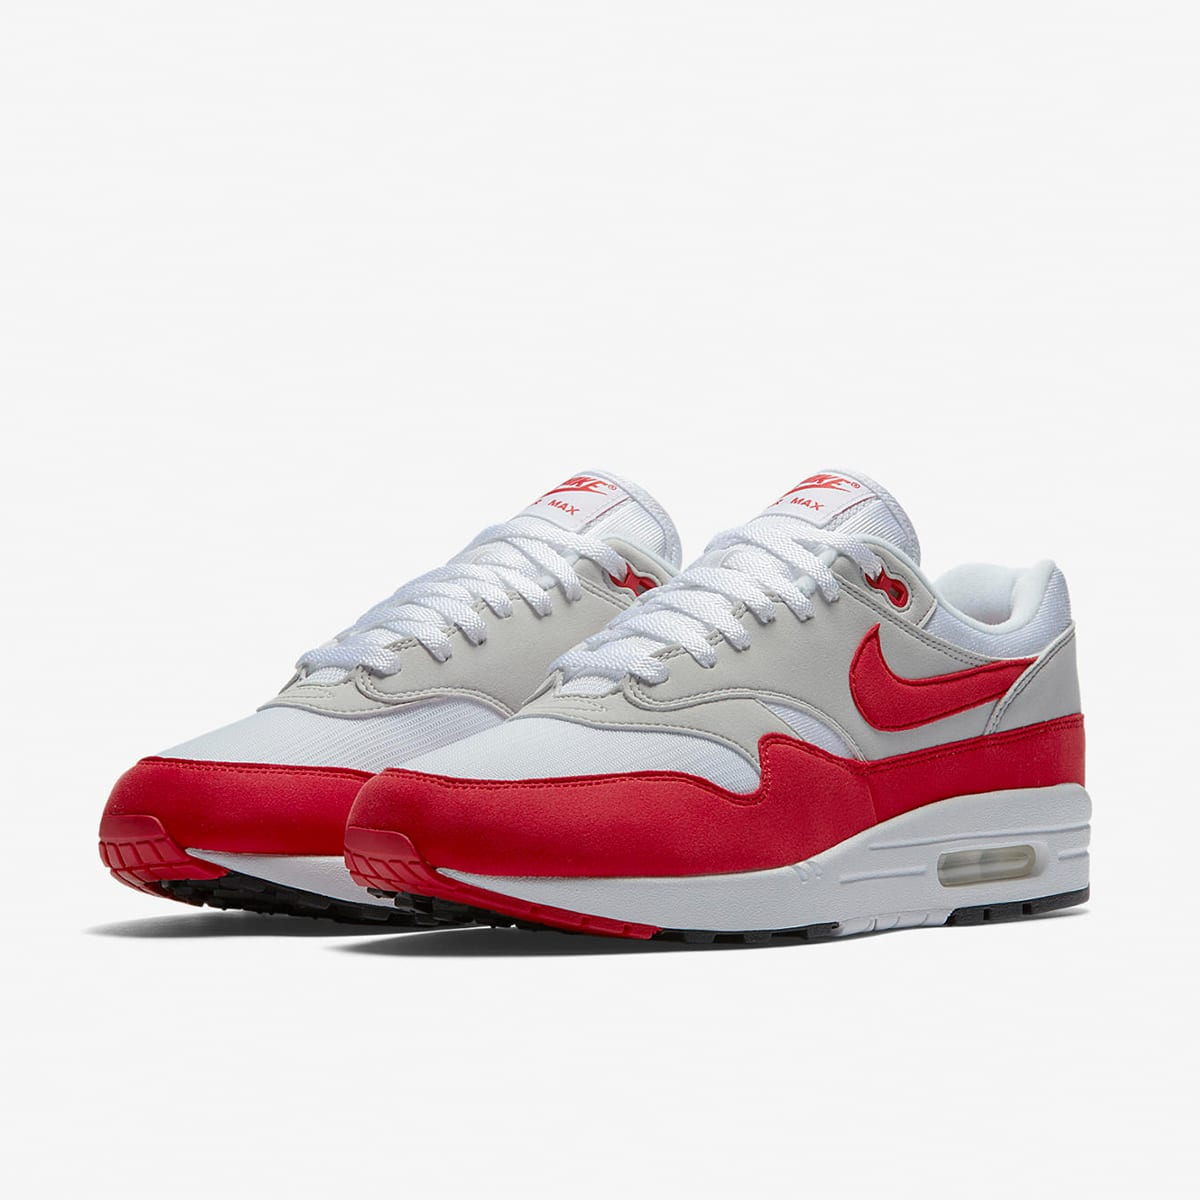 hot sale online 26ef6 23e05 Nike Air Max 1 Anniversary White   University Red   END.